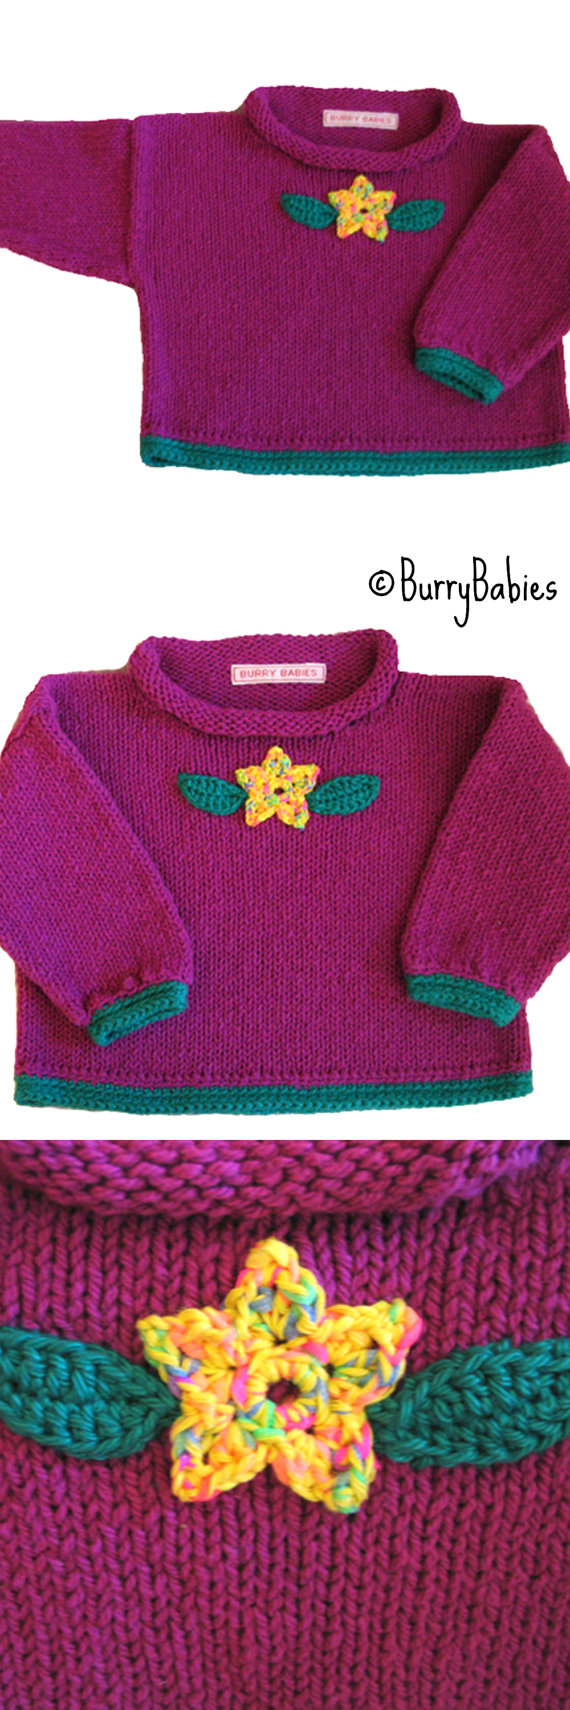 Violet Purple Knitted Baby Sweater with Crocheted Flower and ...